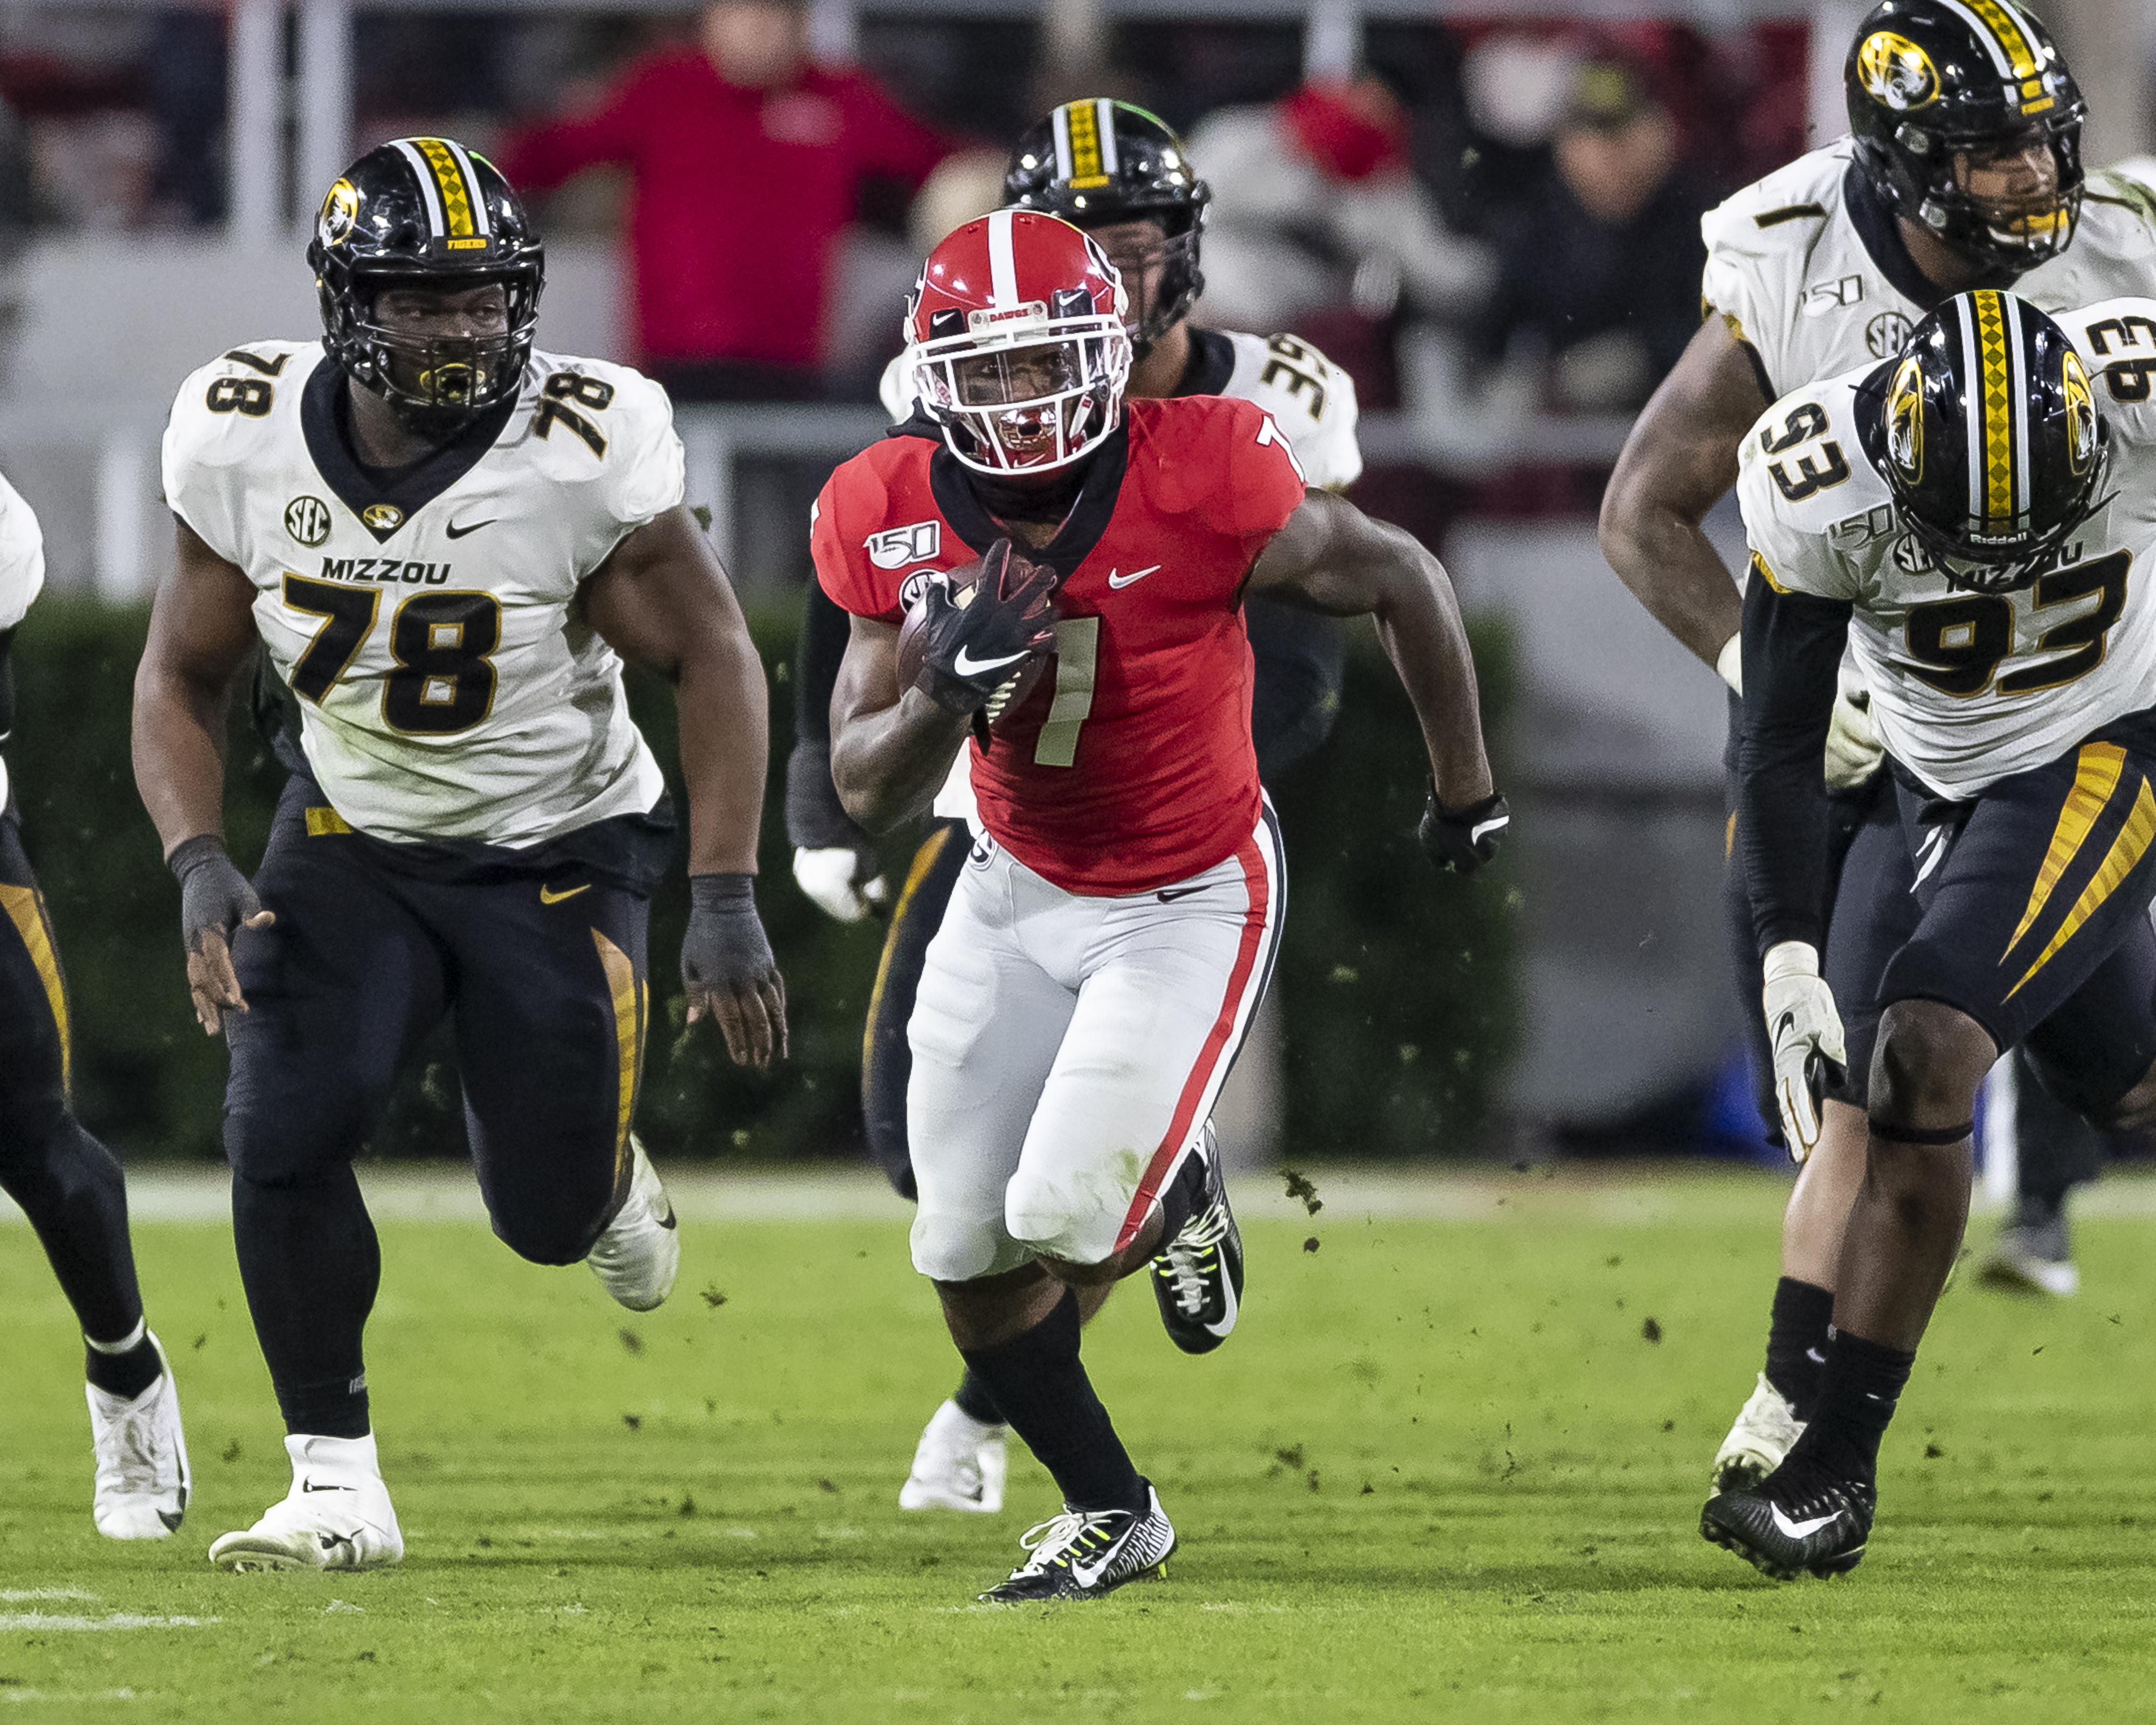 Missouri Tigers v Georgia Bulldogs